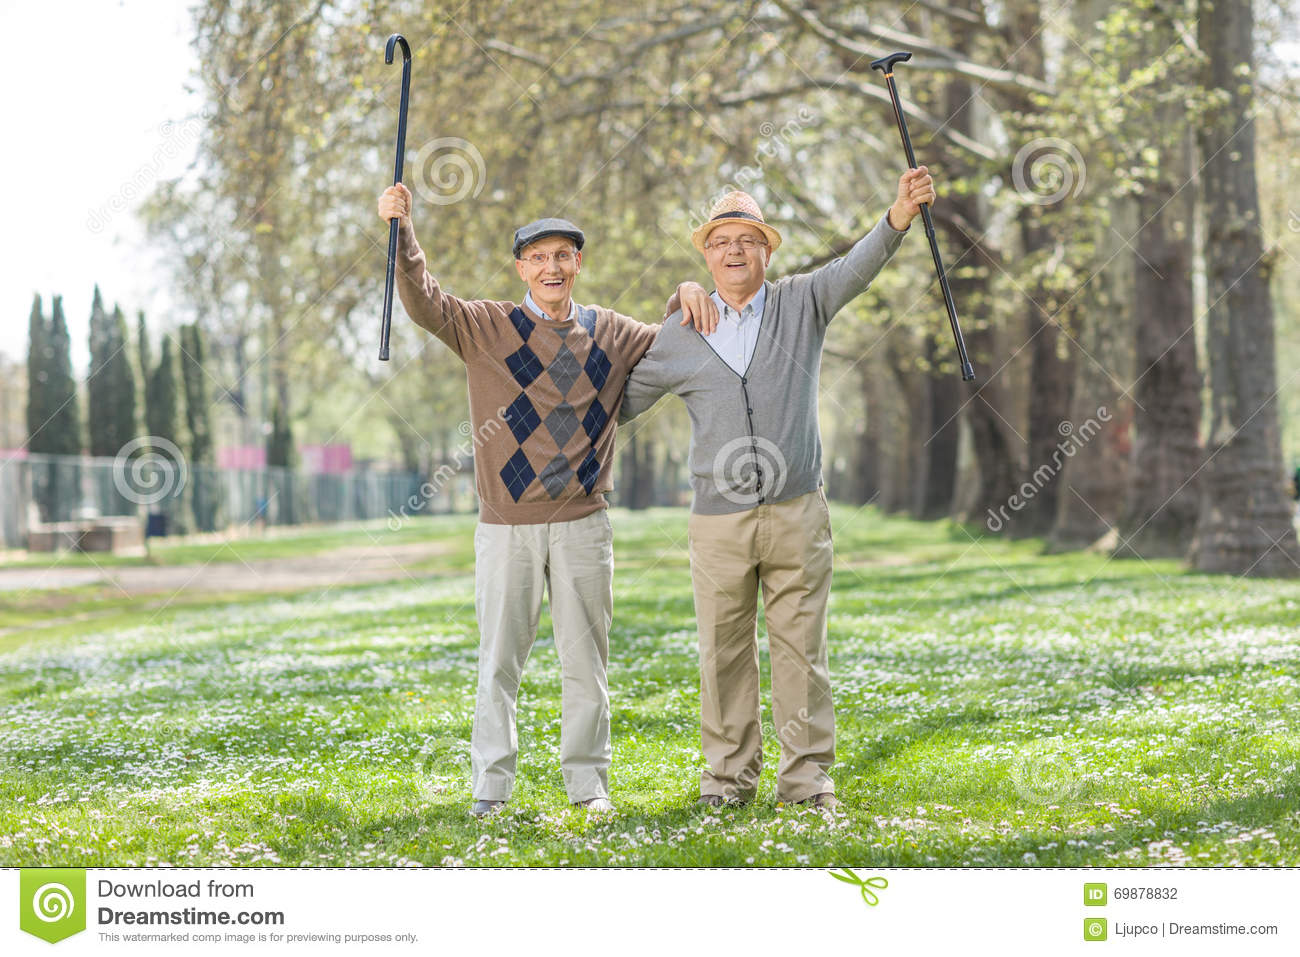 spring park senior personals Come and join the fun at granny personals  granny personals is a club for senior men and women who are looking to find new friends and, yes, even partners.